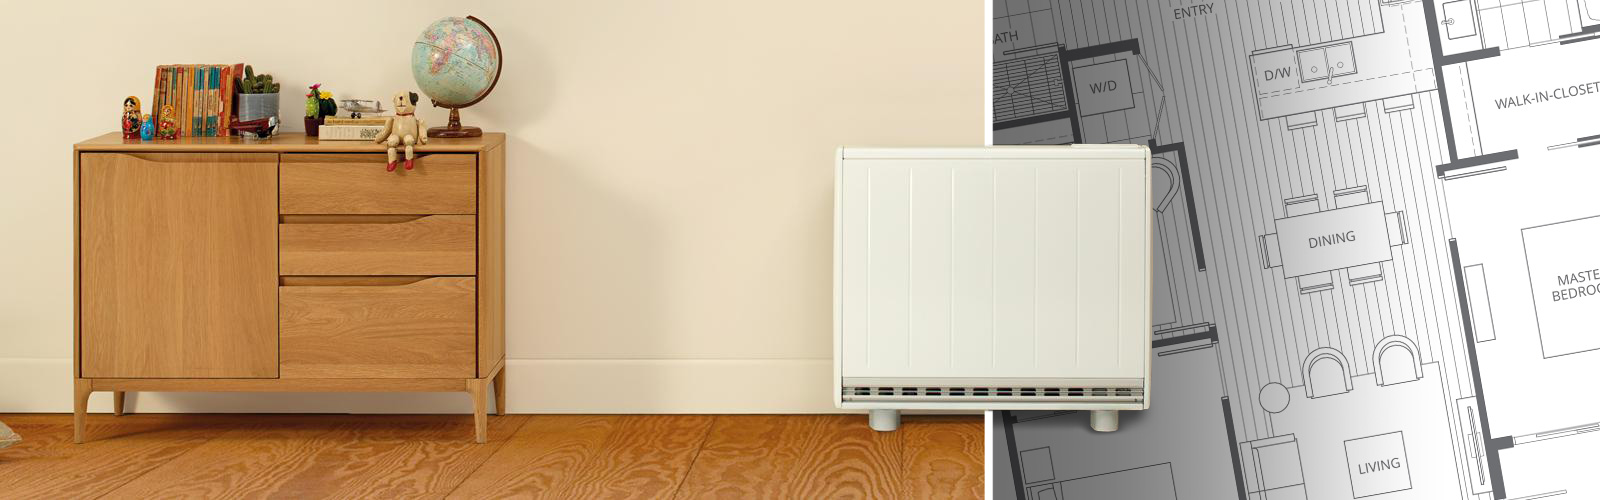 How to calculate what size heater for a room?